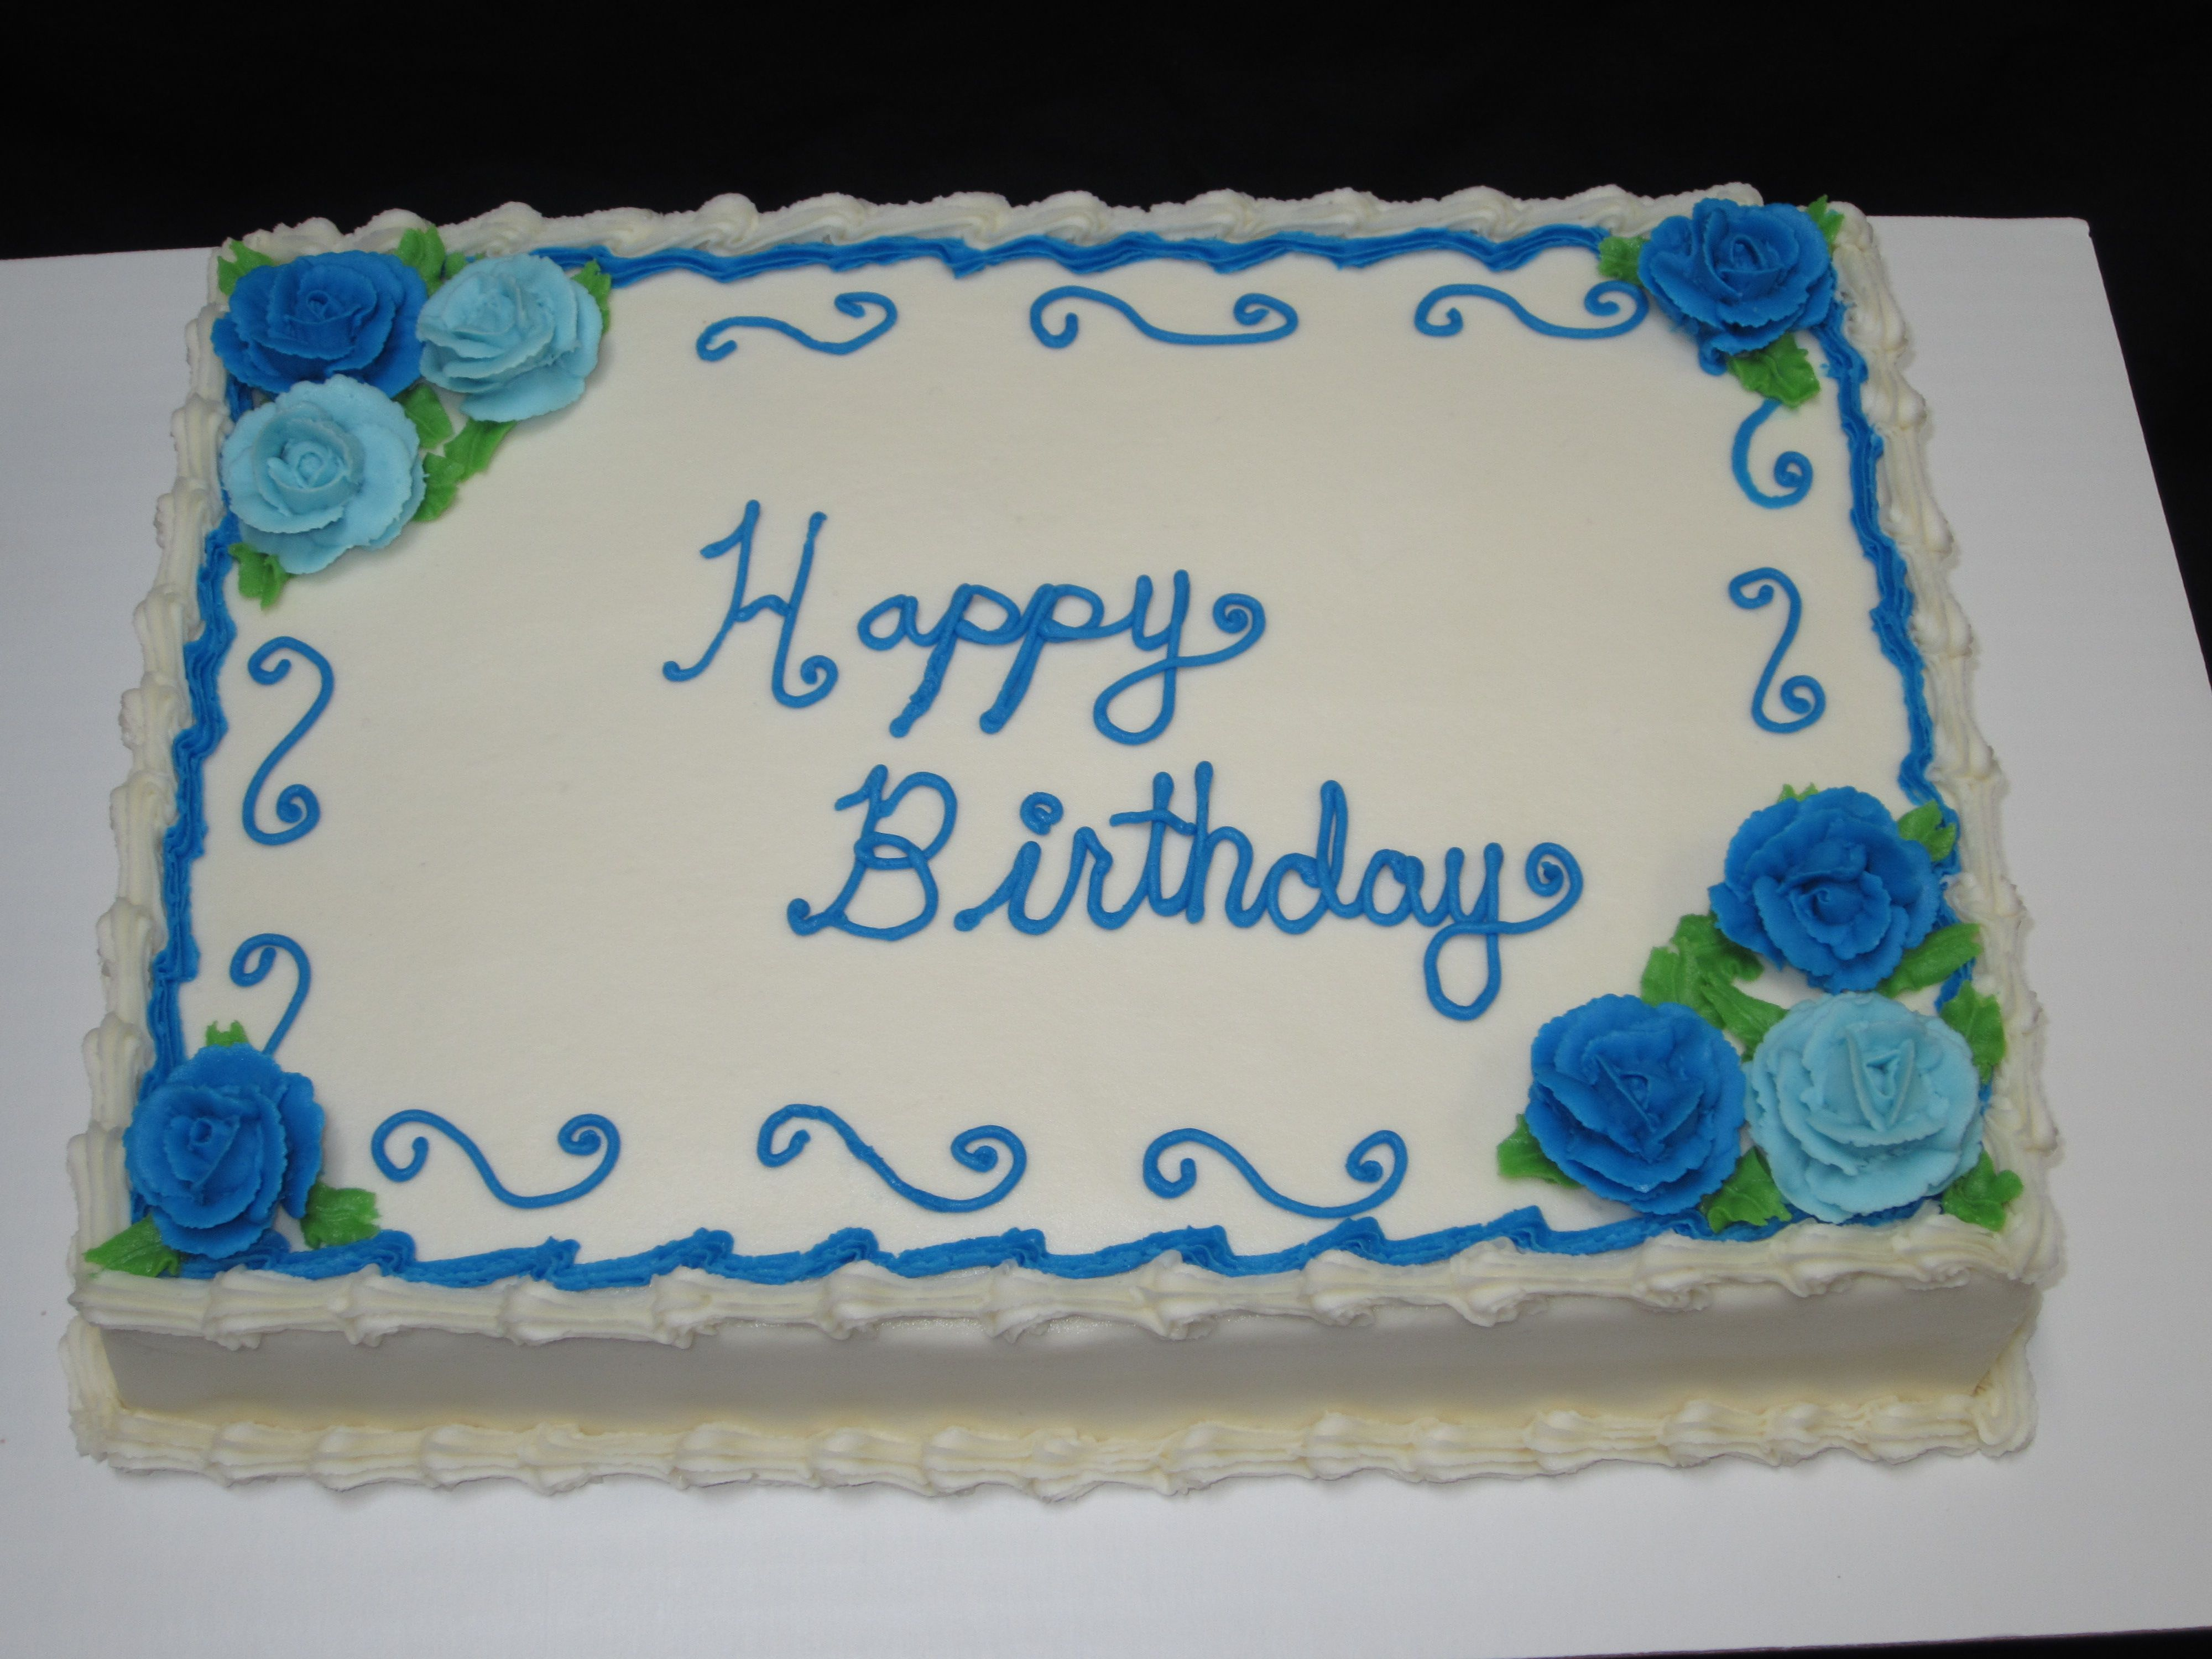 Classic Sheet Cake With Blue Buttercream Roses For A